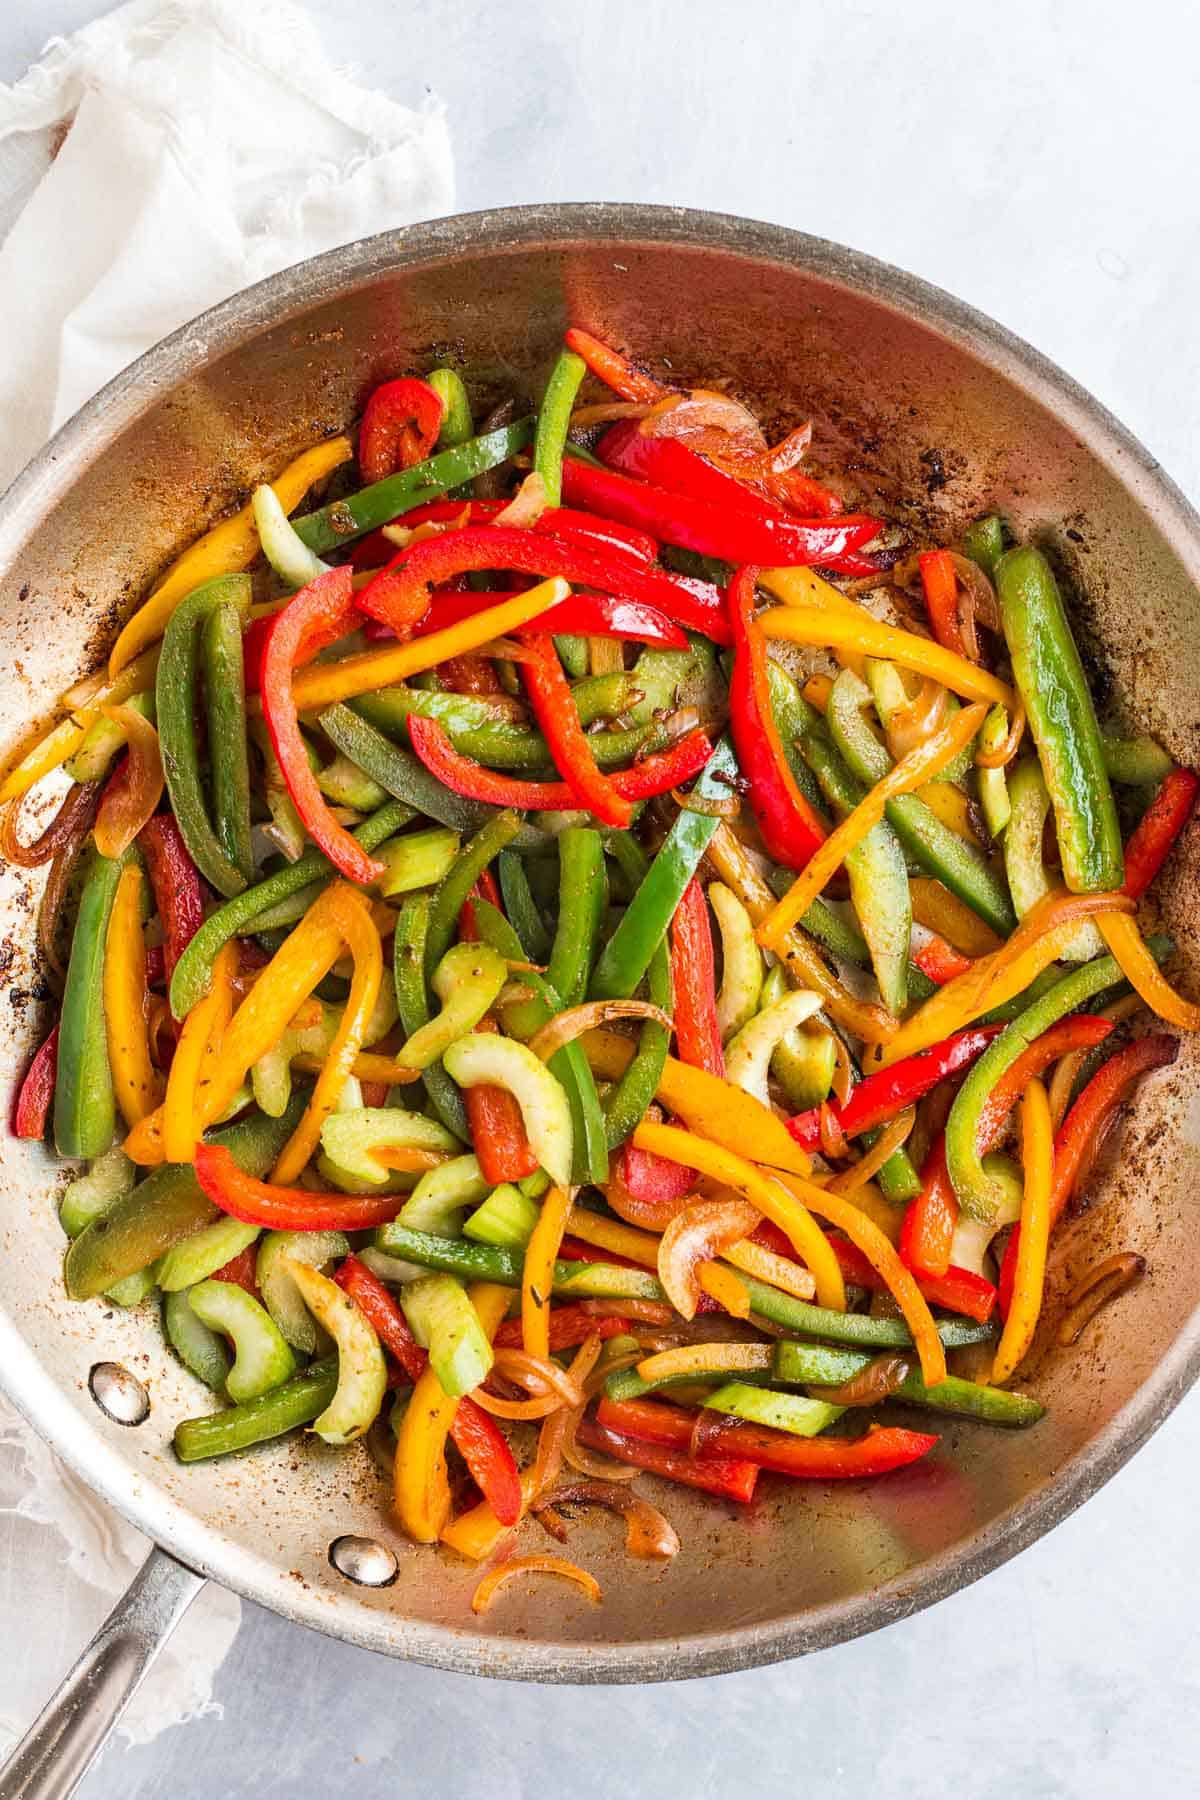 sauteed vegetables in a grey frying pan.